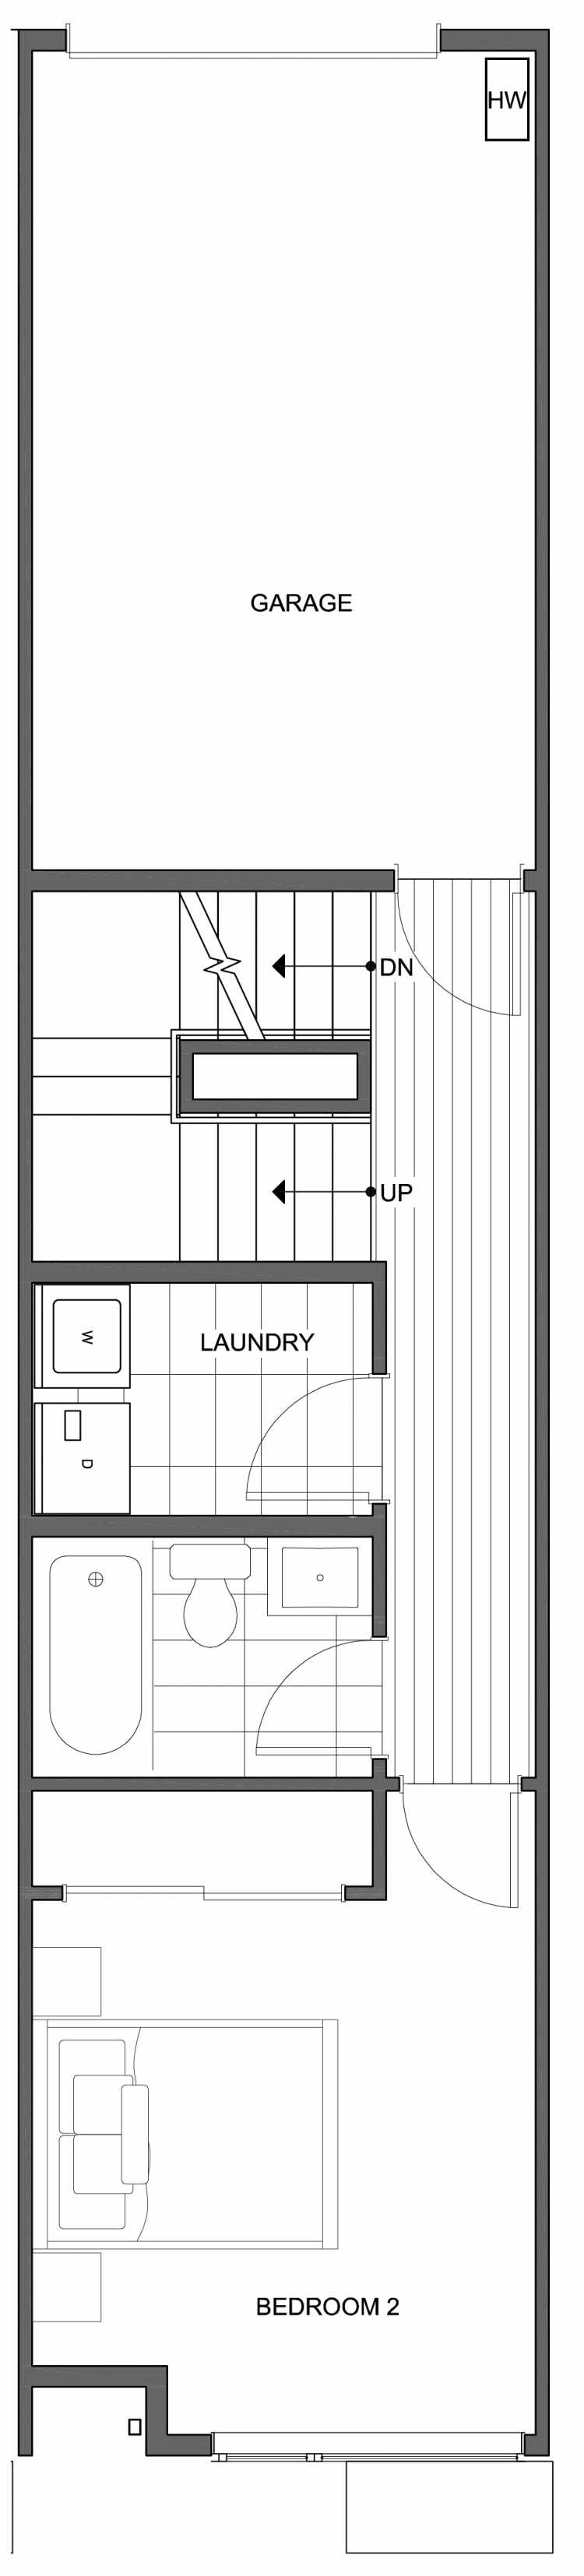 Second Floor Plan of 806B N 46th St, One of the Nino 15 East Townhomes by Isola Homes